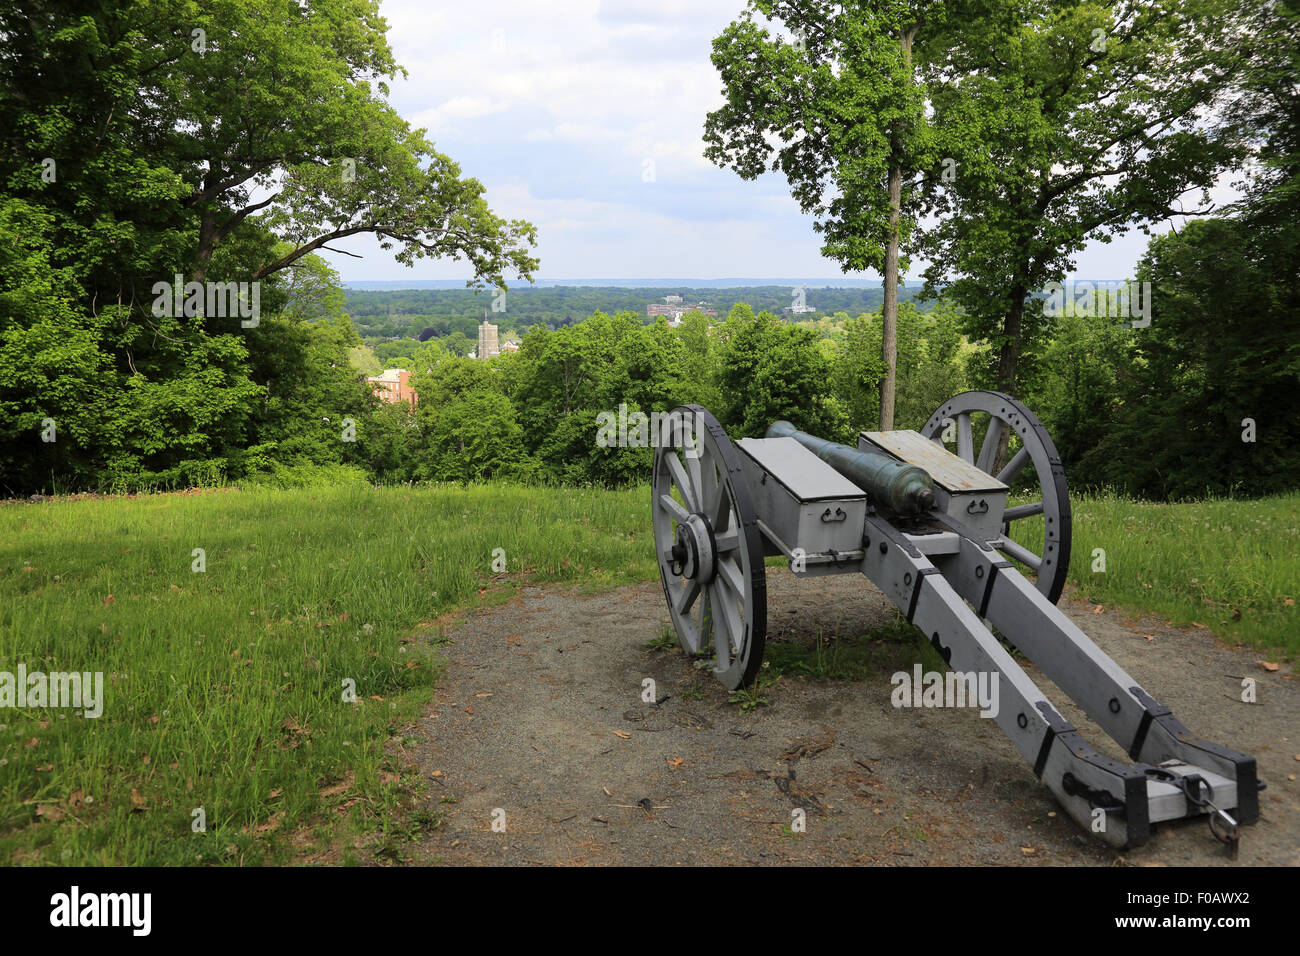 Fort Nonsense Historical Park Morristown New Jersey USA - Stock Image